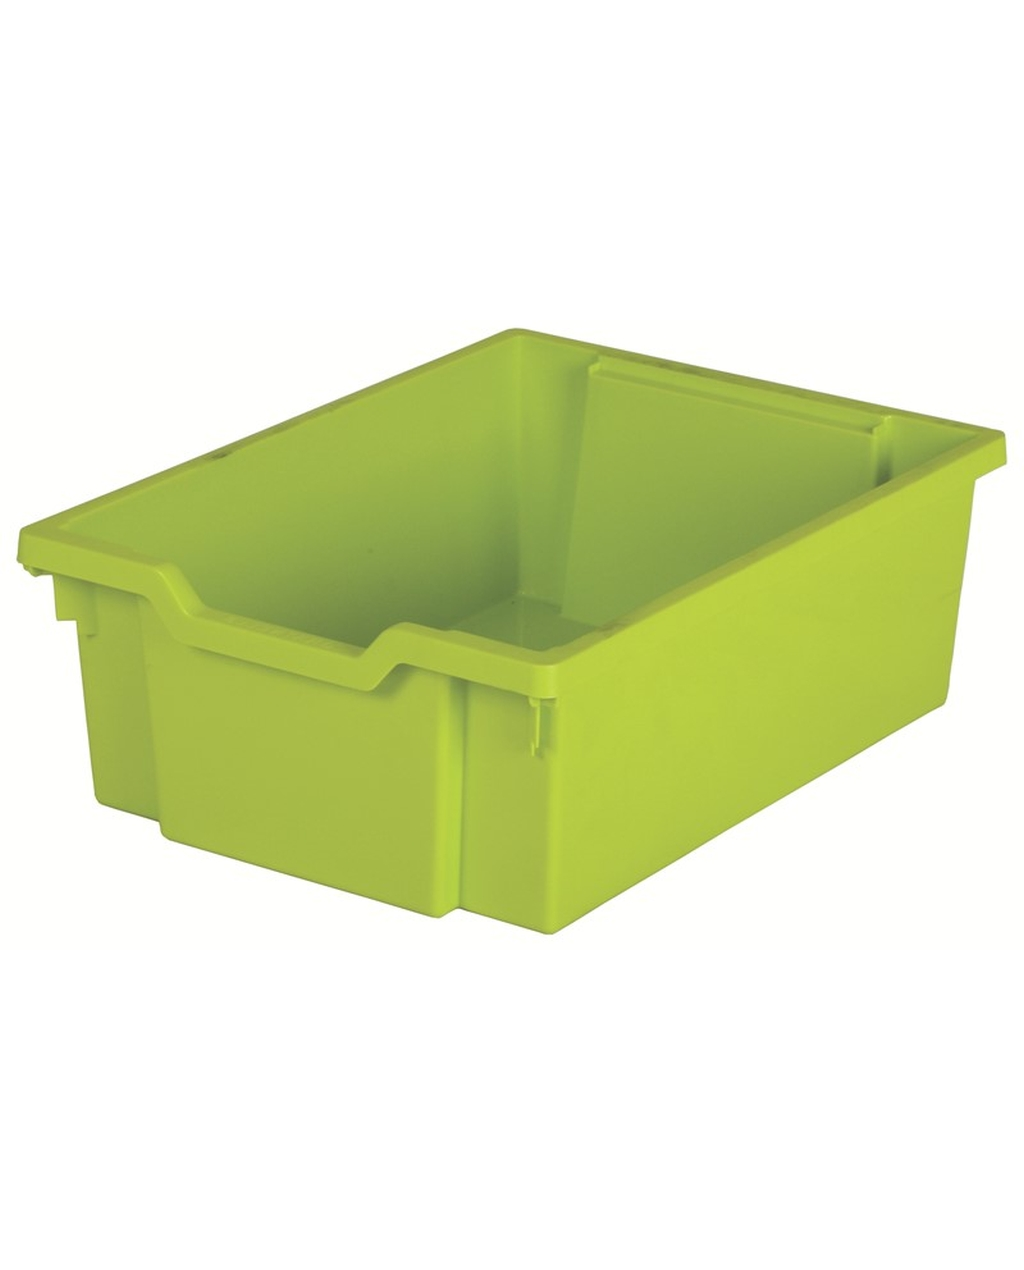 Gratnells Deep Tray - Lime Green